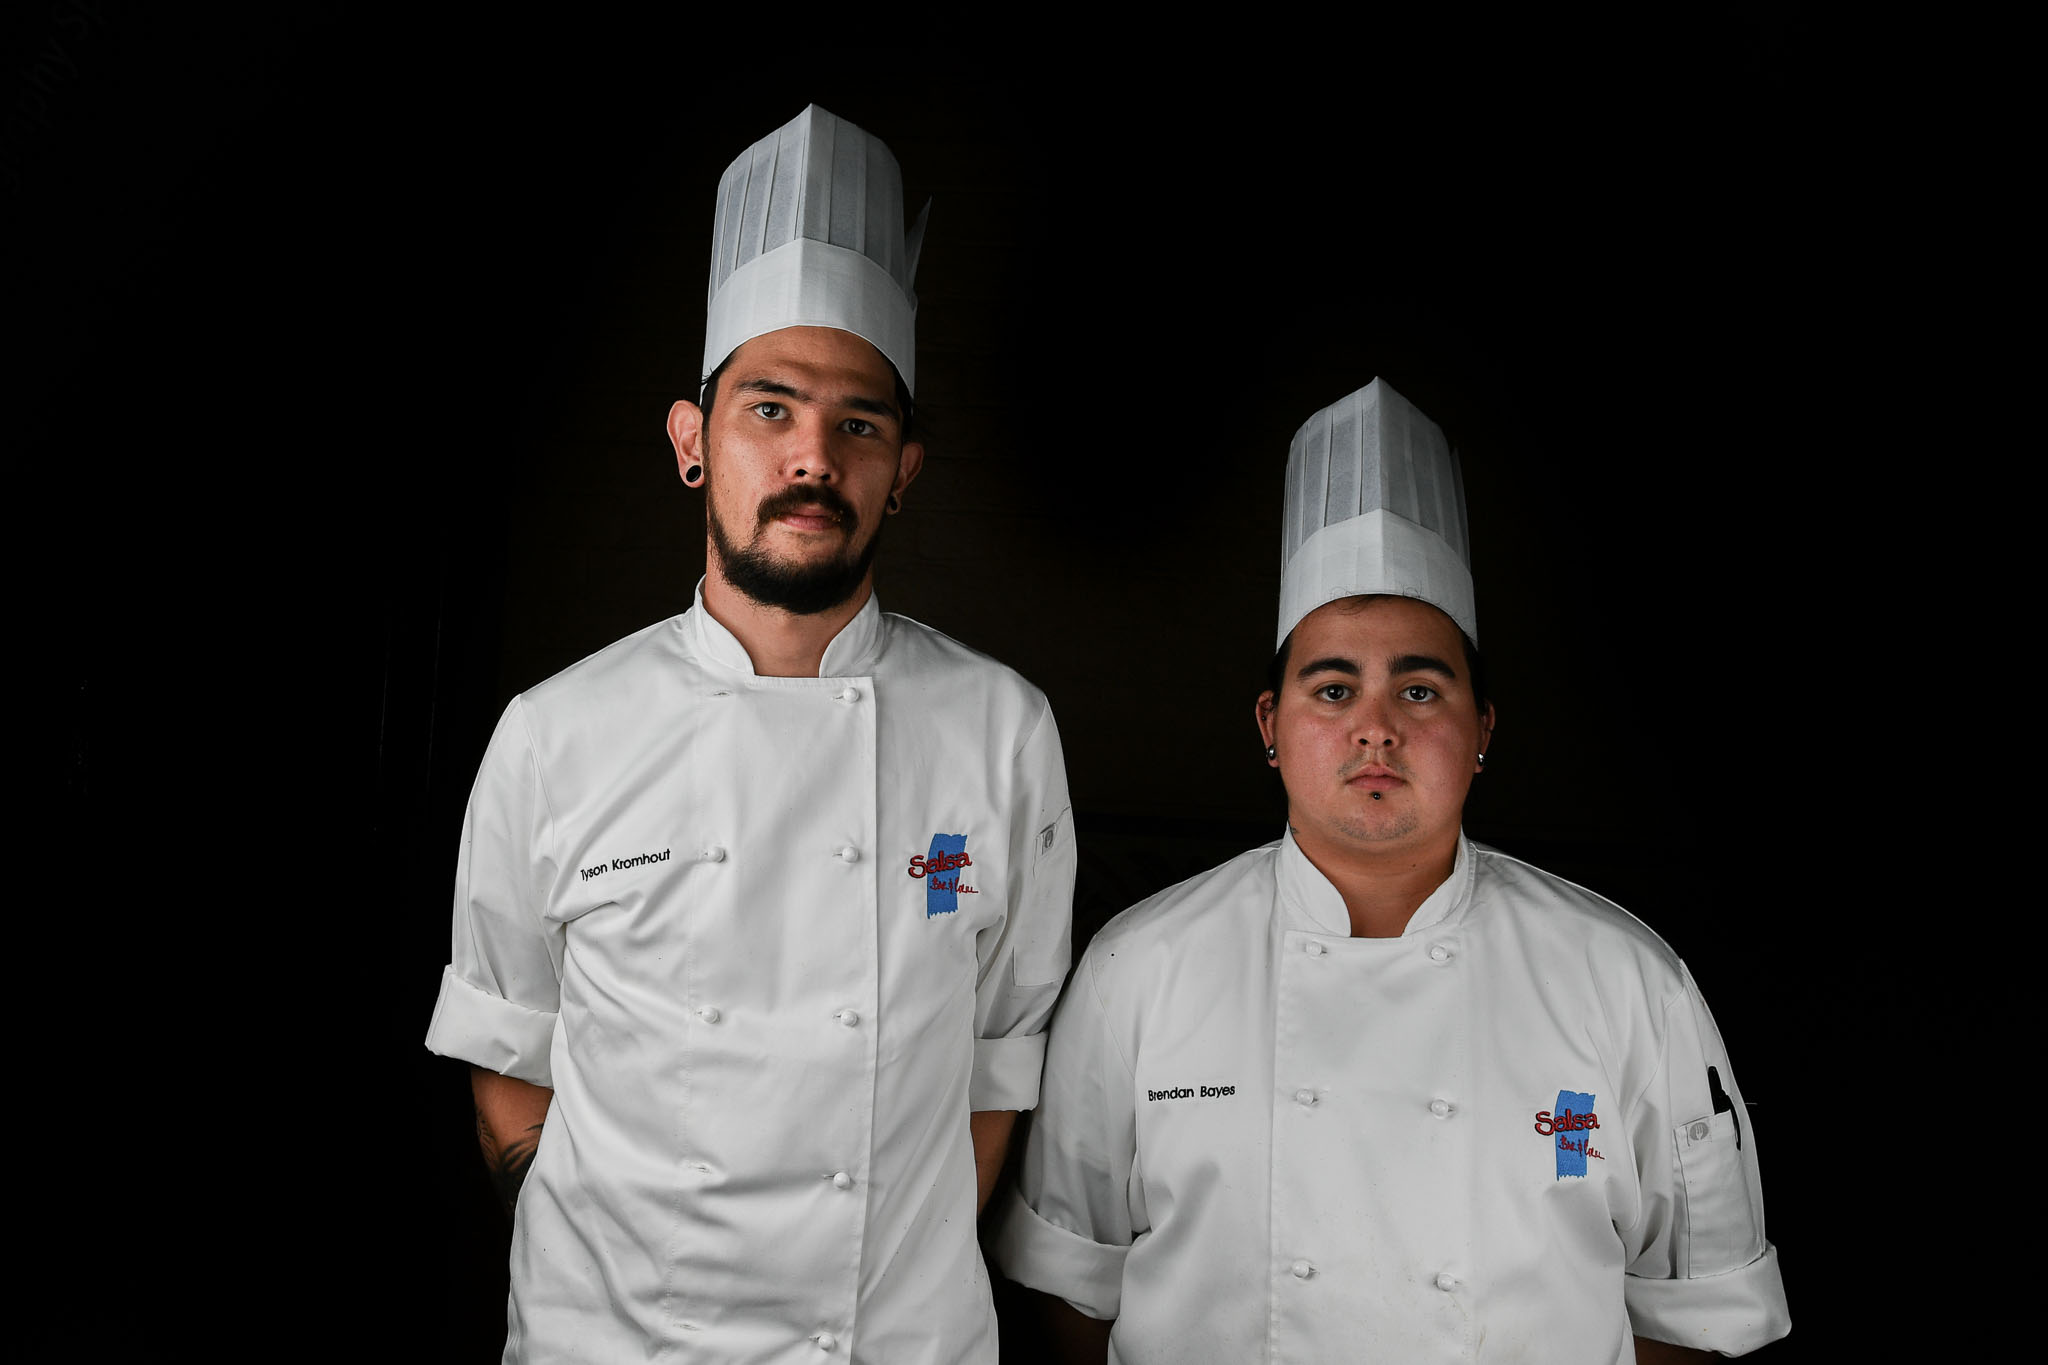 Melbourne, 30 May 2017 - Tyson Kromhout and Brendan Bayes commis chef of the Salsa Bar & Grill in Port Douglas pose for a photograph at the Australian selection trials of the Bocuse d'Or culinary competition held during the Food Service Australia show at the Royal Exhibition Building in Melbourne, Australia. Photo Sydney Low